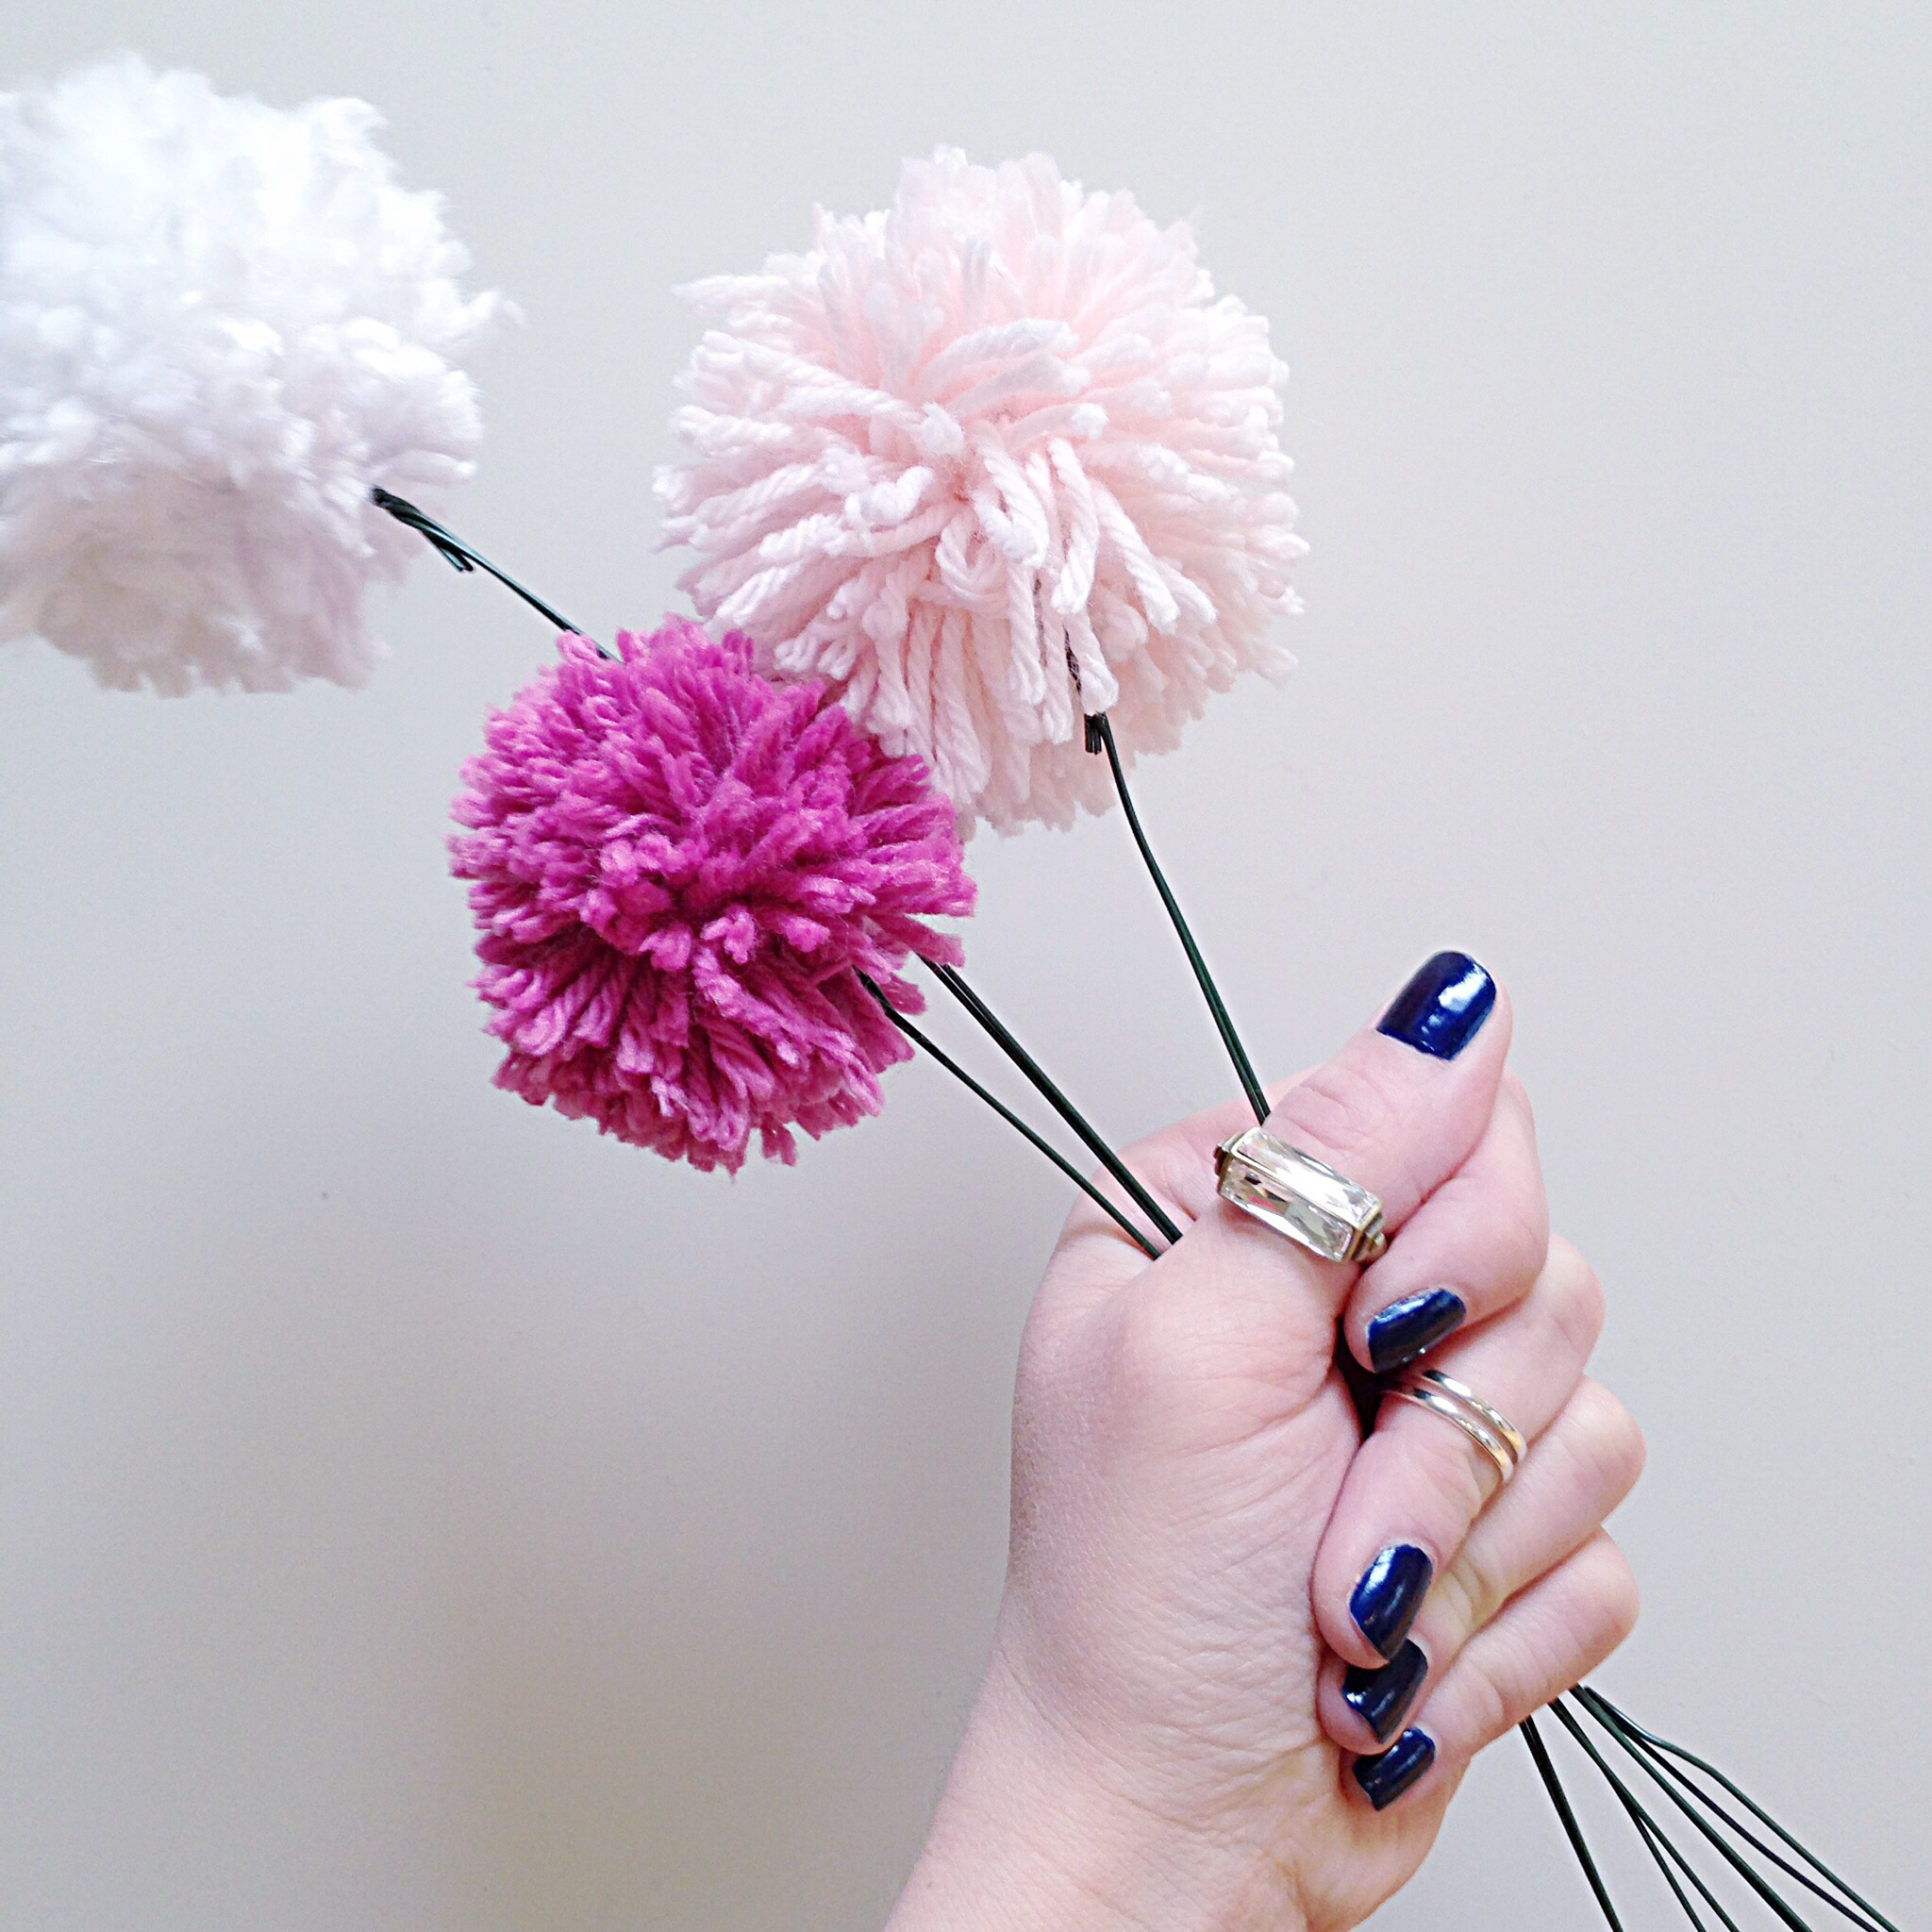 The Pom Pom flowers in a persons hand who has blue nail polish.